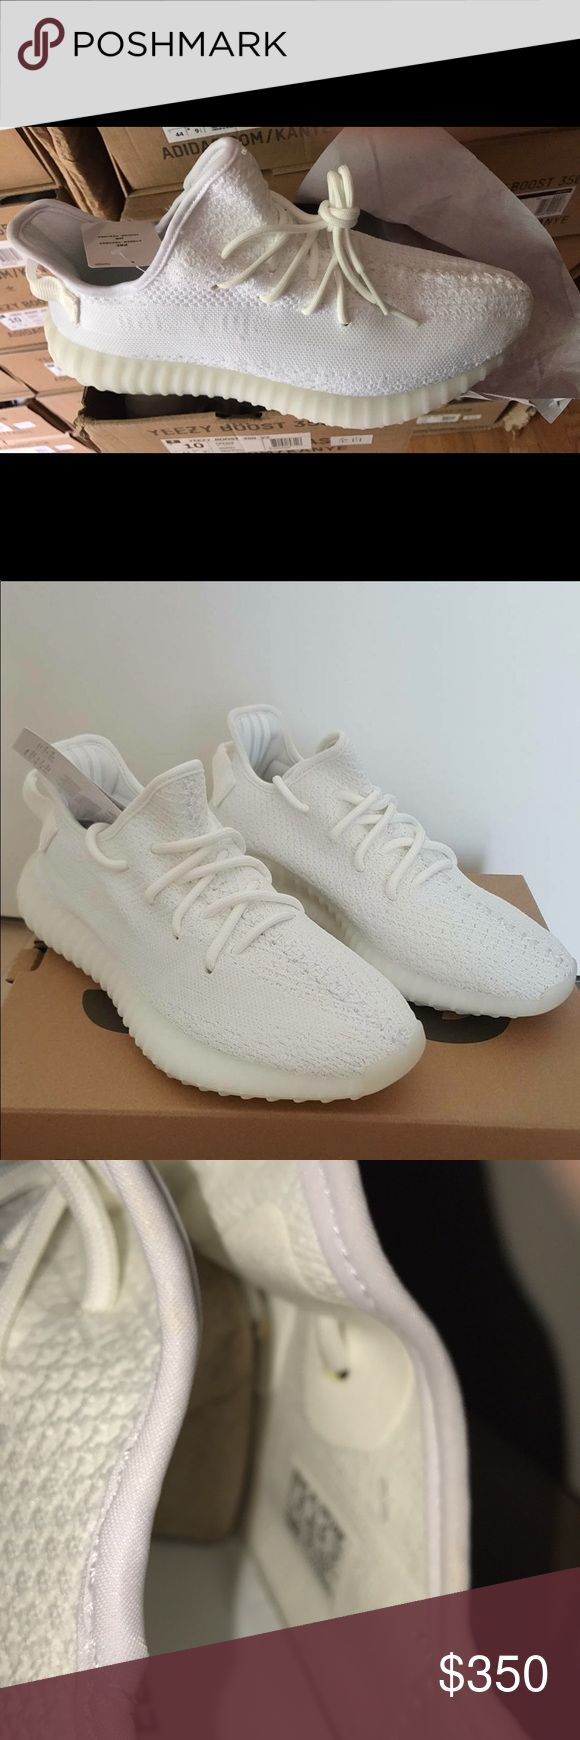 Adidas Yeezy Boost V2 Cream White Cream white Men Sizes 10-11s Price is Negotiable if buying more then 1 pair Aslo have Zebra Blue and Zebra Blk n wht. Belugas aslo in stock. All prices the same. Yeezy Shoes Athletic Shoes